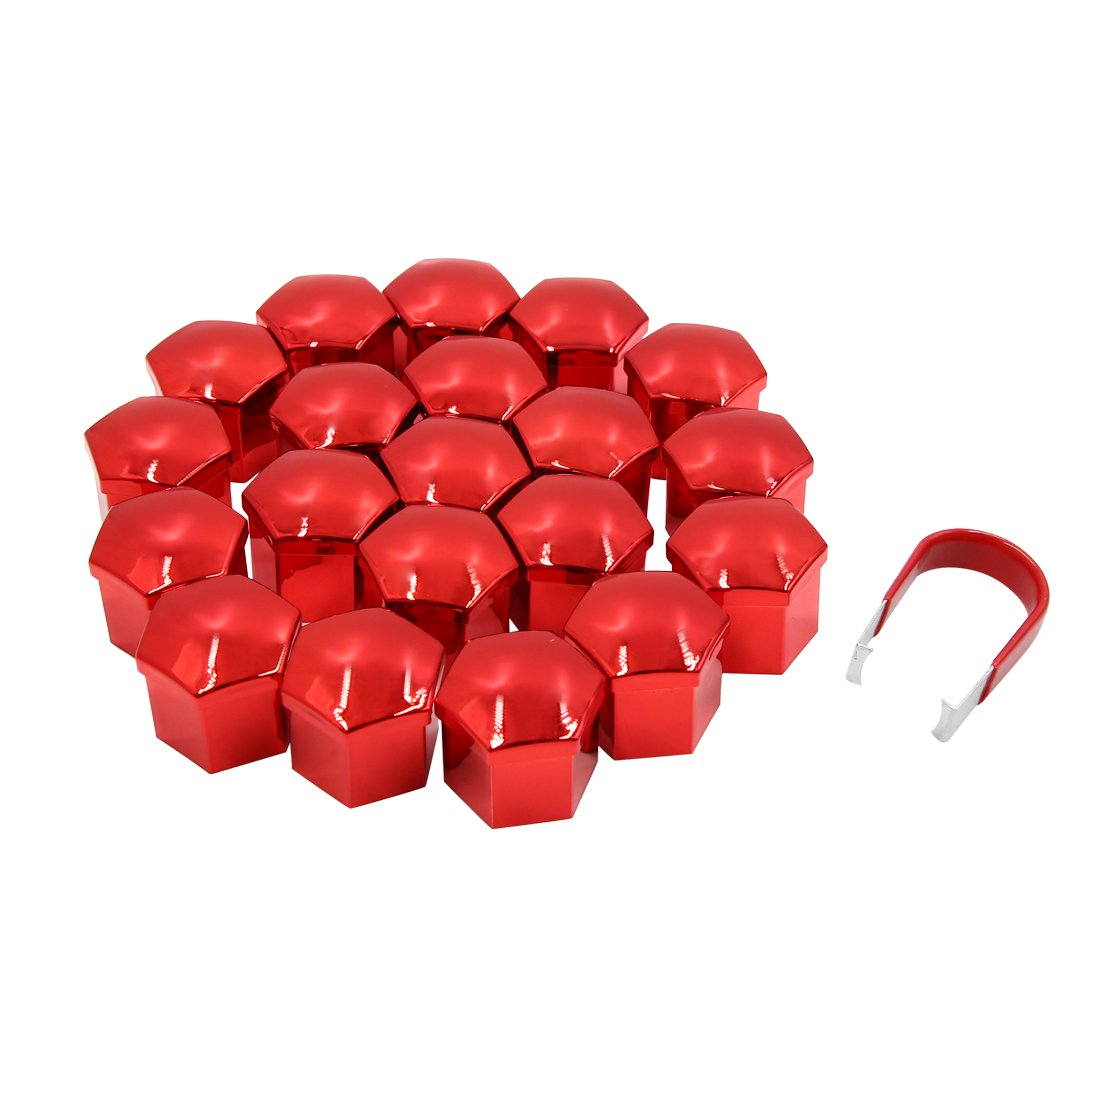 Sourcingmap 20pcs Red 21mm Car Wheel Lug Nut Cap Tyre Hub Screw Bolt Dust Cover Protector a18051500ux0311